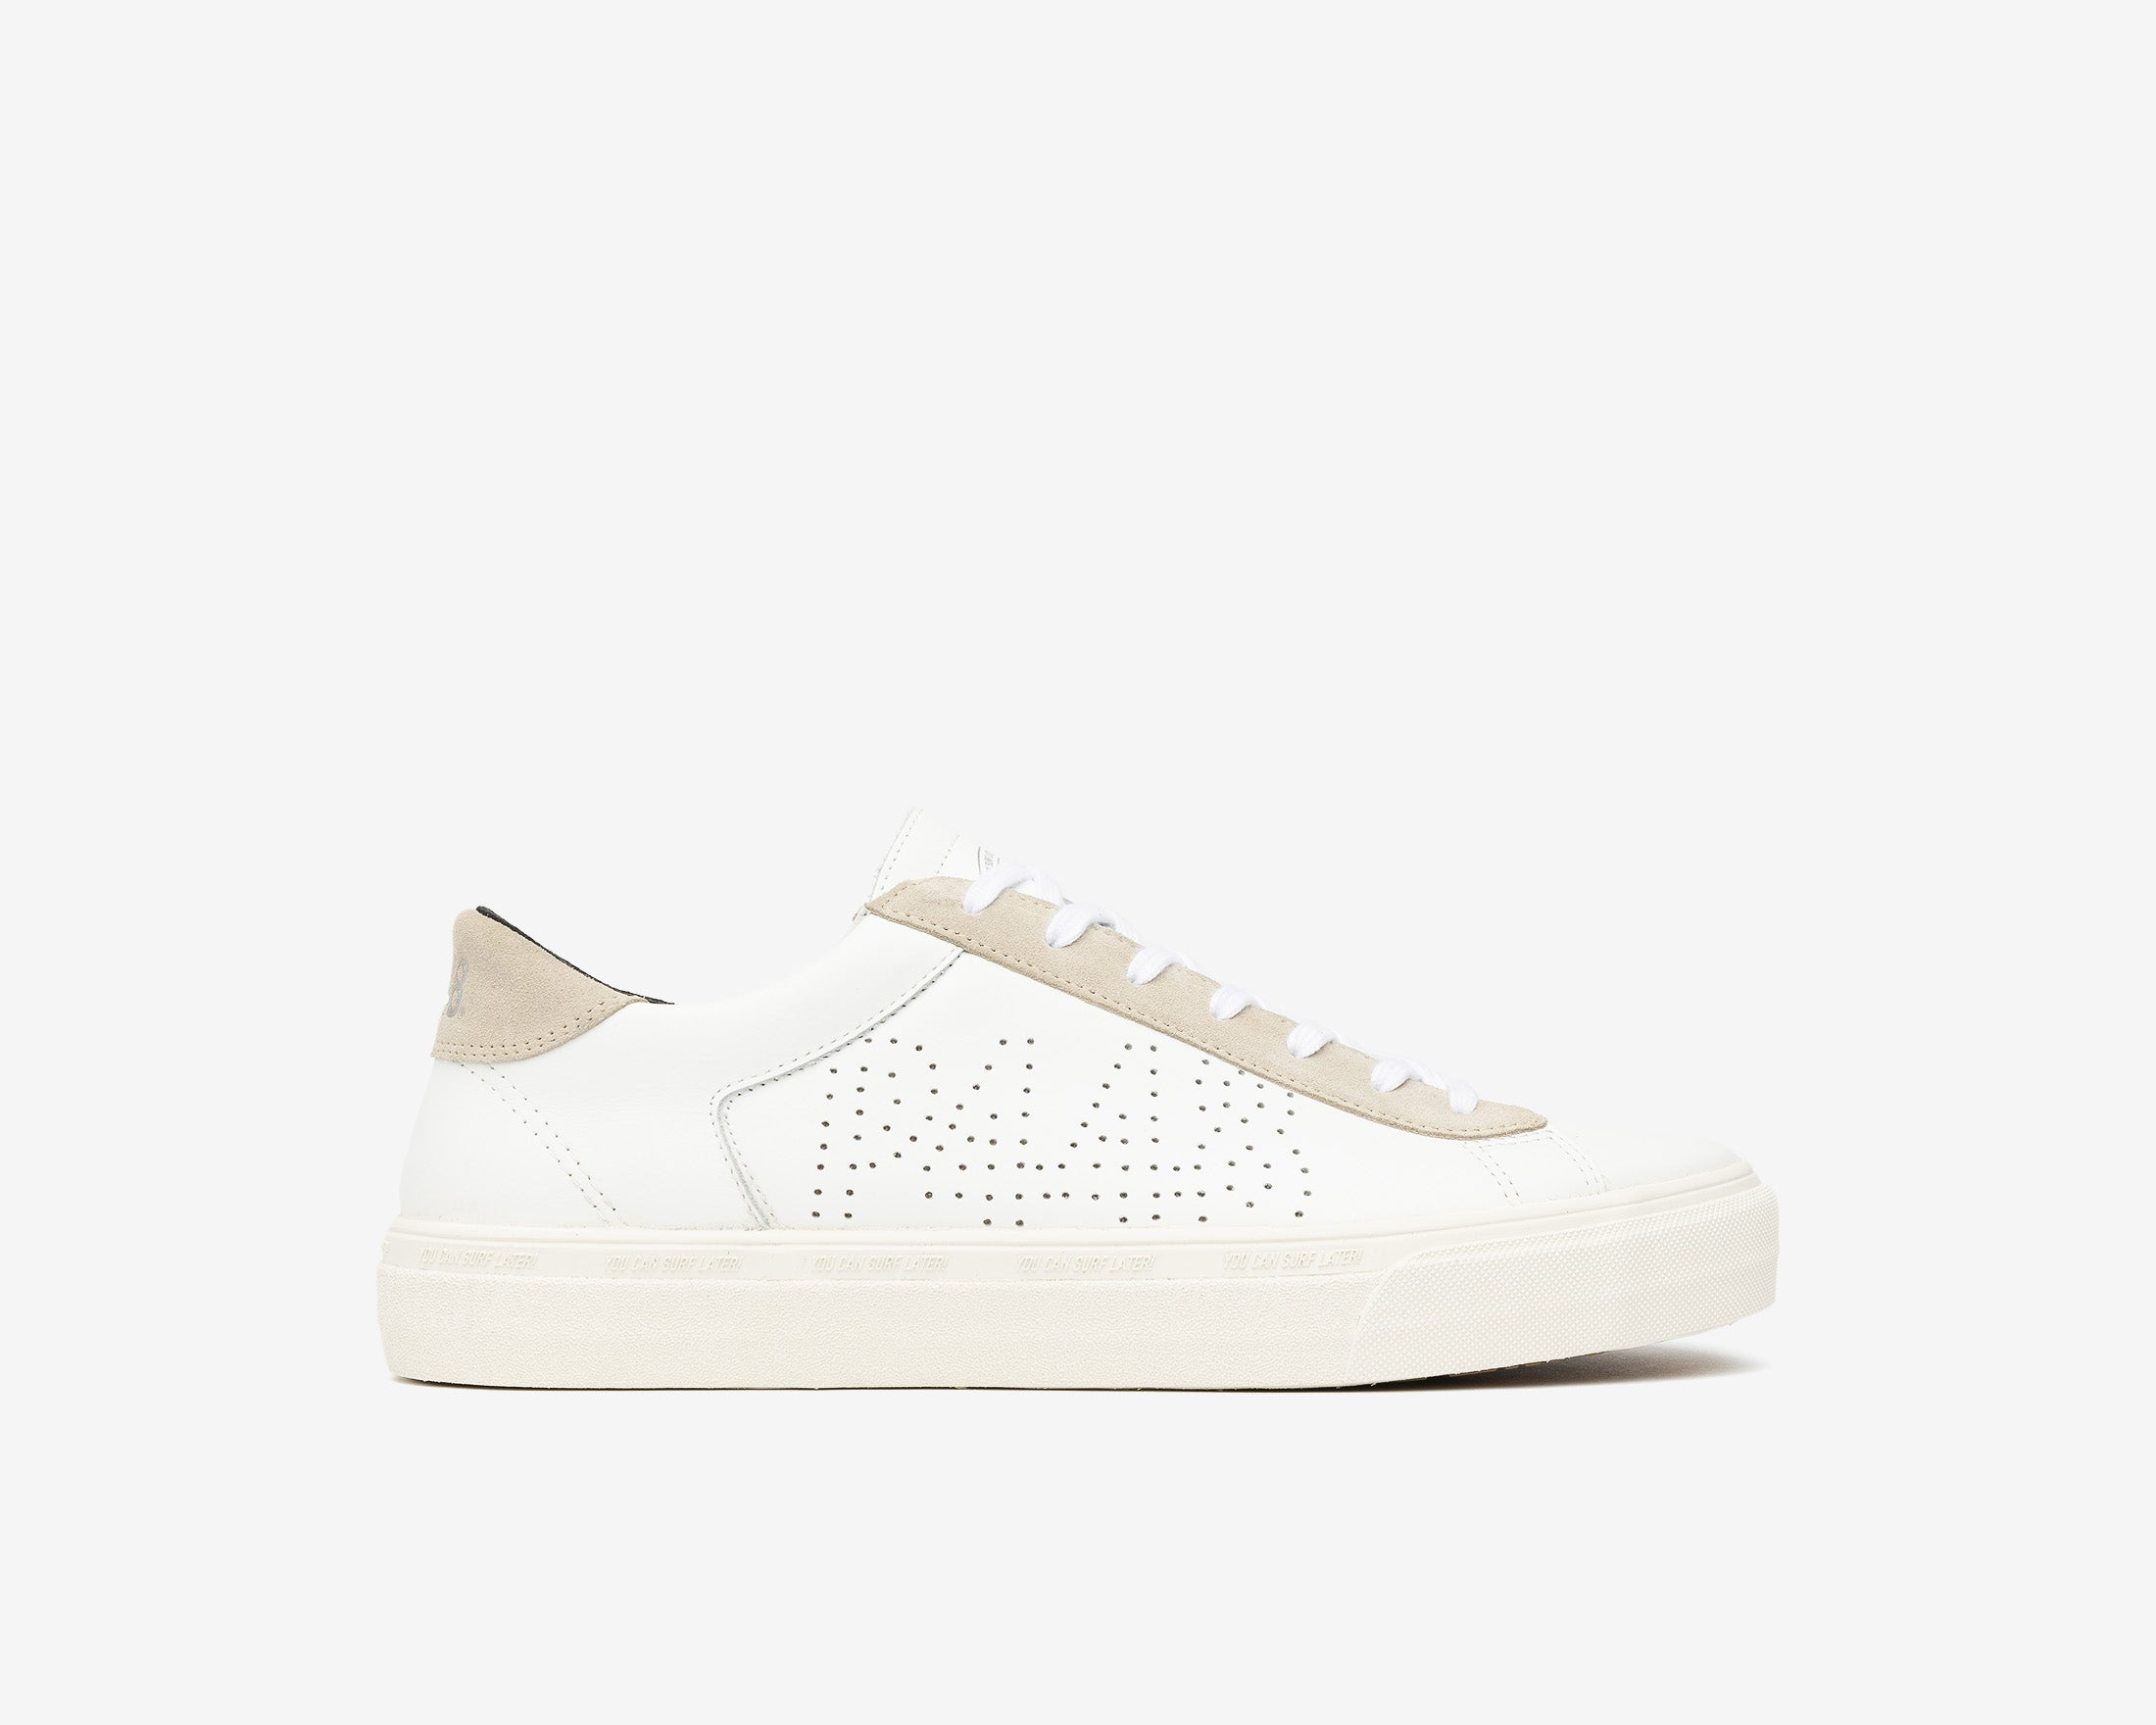 Y.C.S.L. Low-Top Volcanized Sneaker in White/Sand - Profile